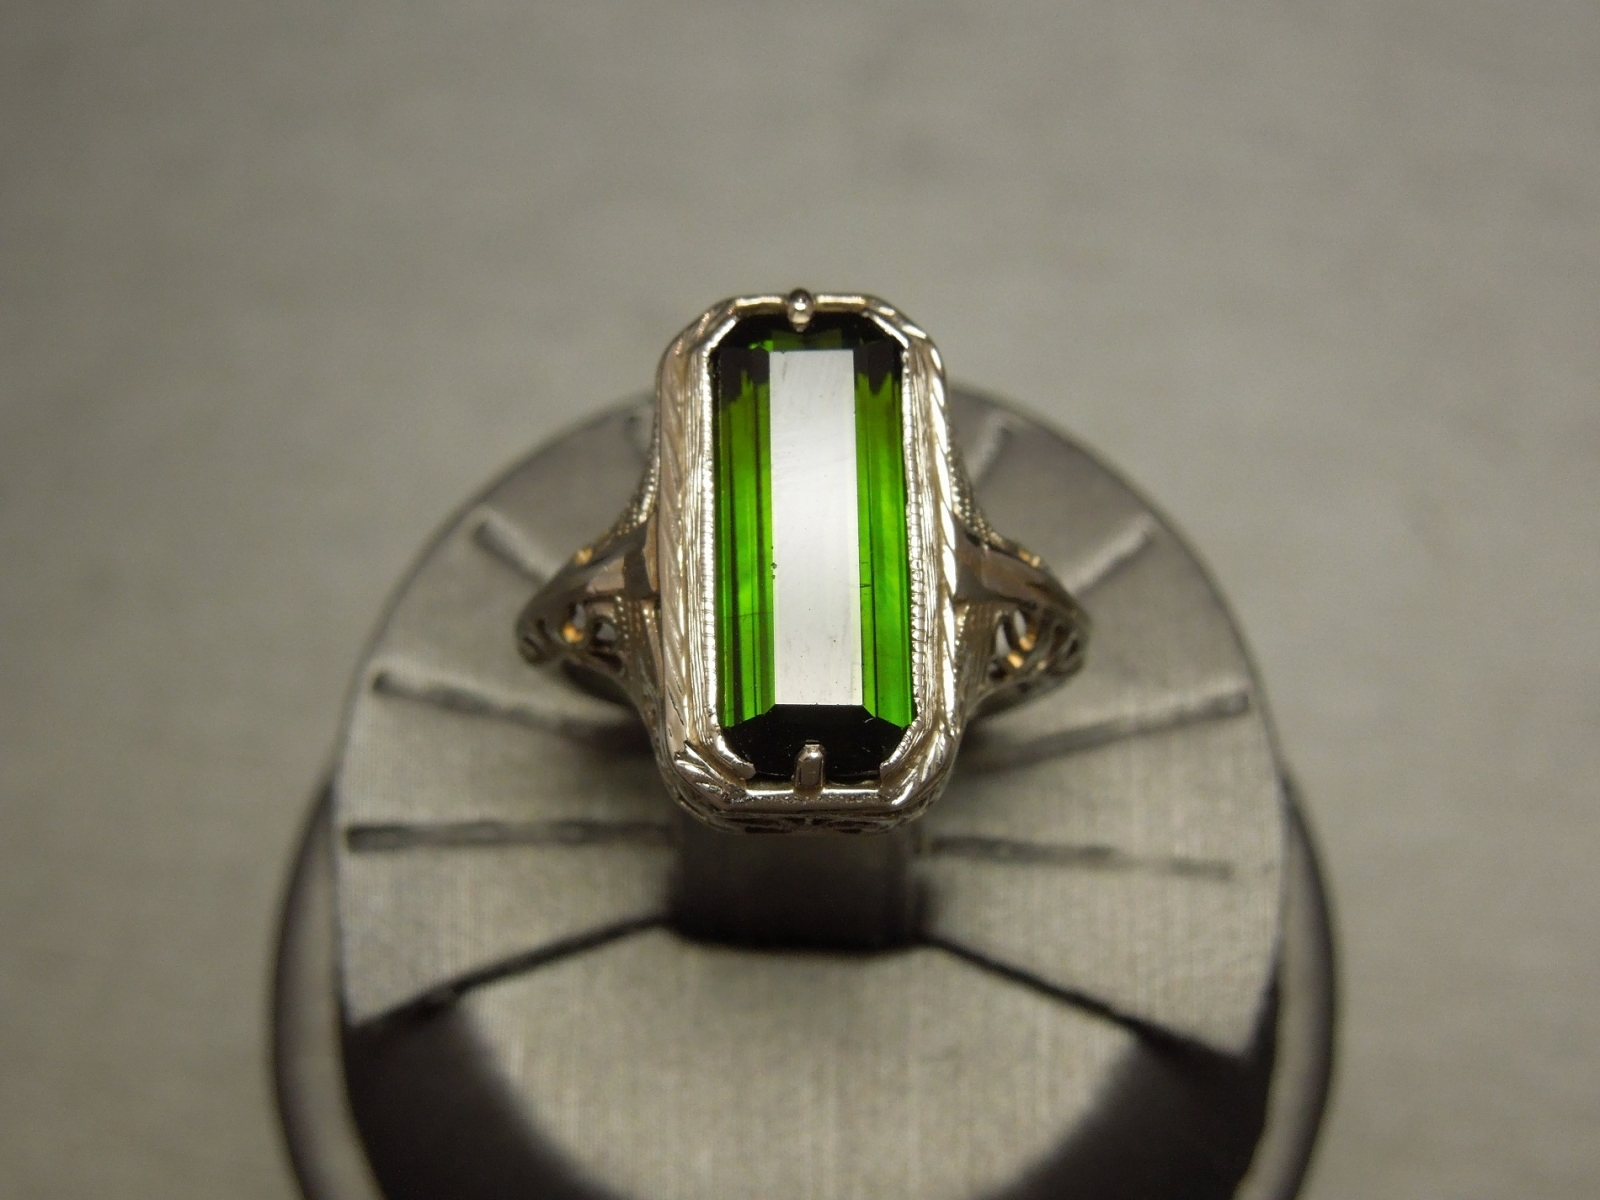 Antique Green Tourmaline Ring 6ct 18k Wg Filigree C1910